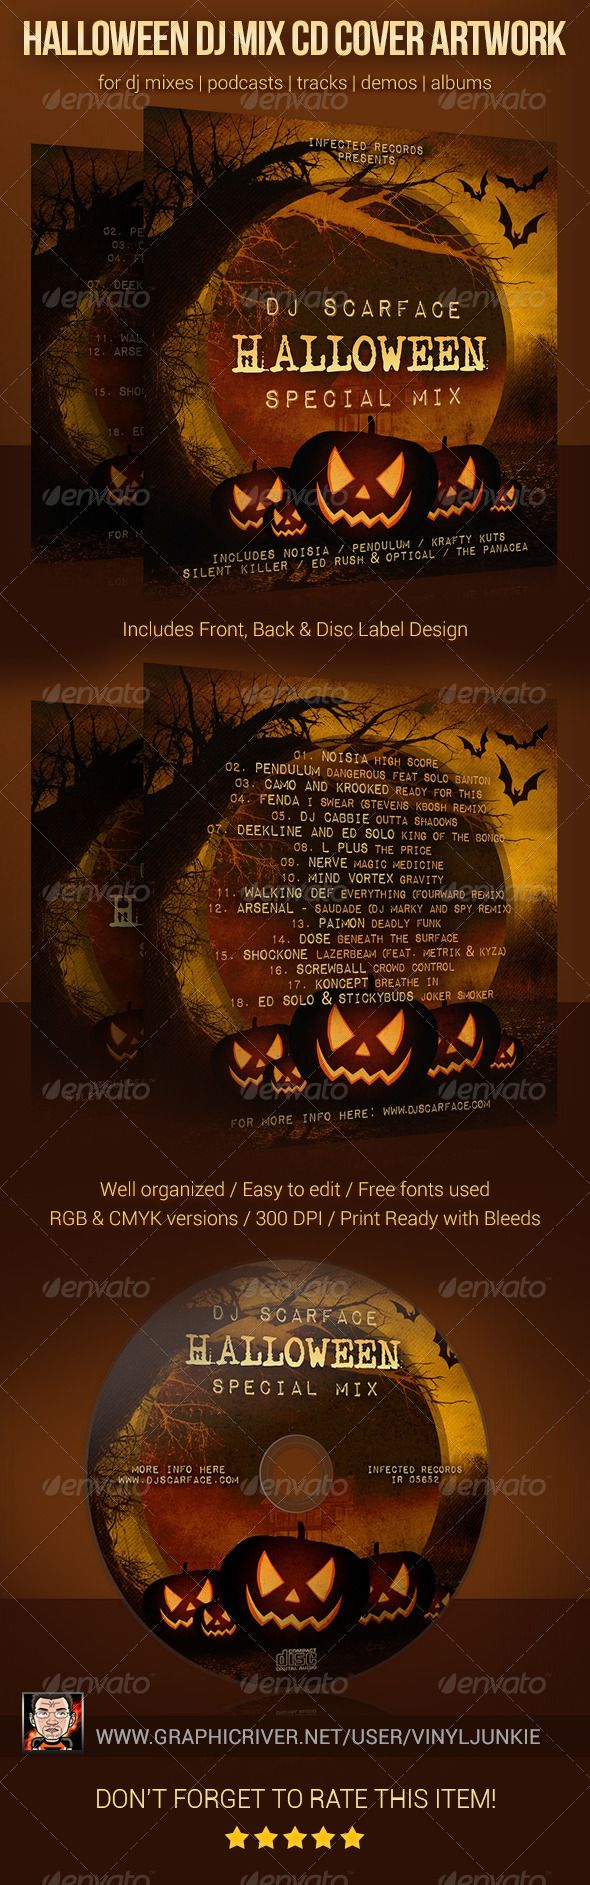 Various deep house stories vol 10 at juno download - Halloween Dj Mix Cd Cover Artwork Template